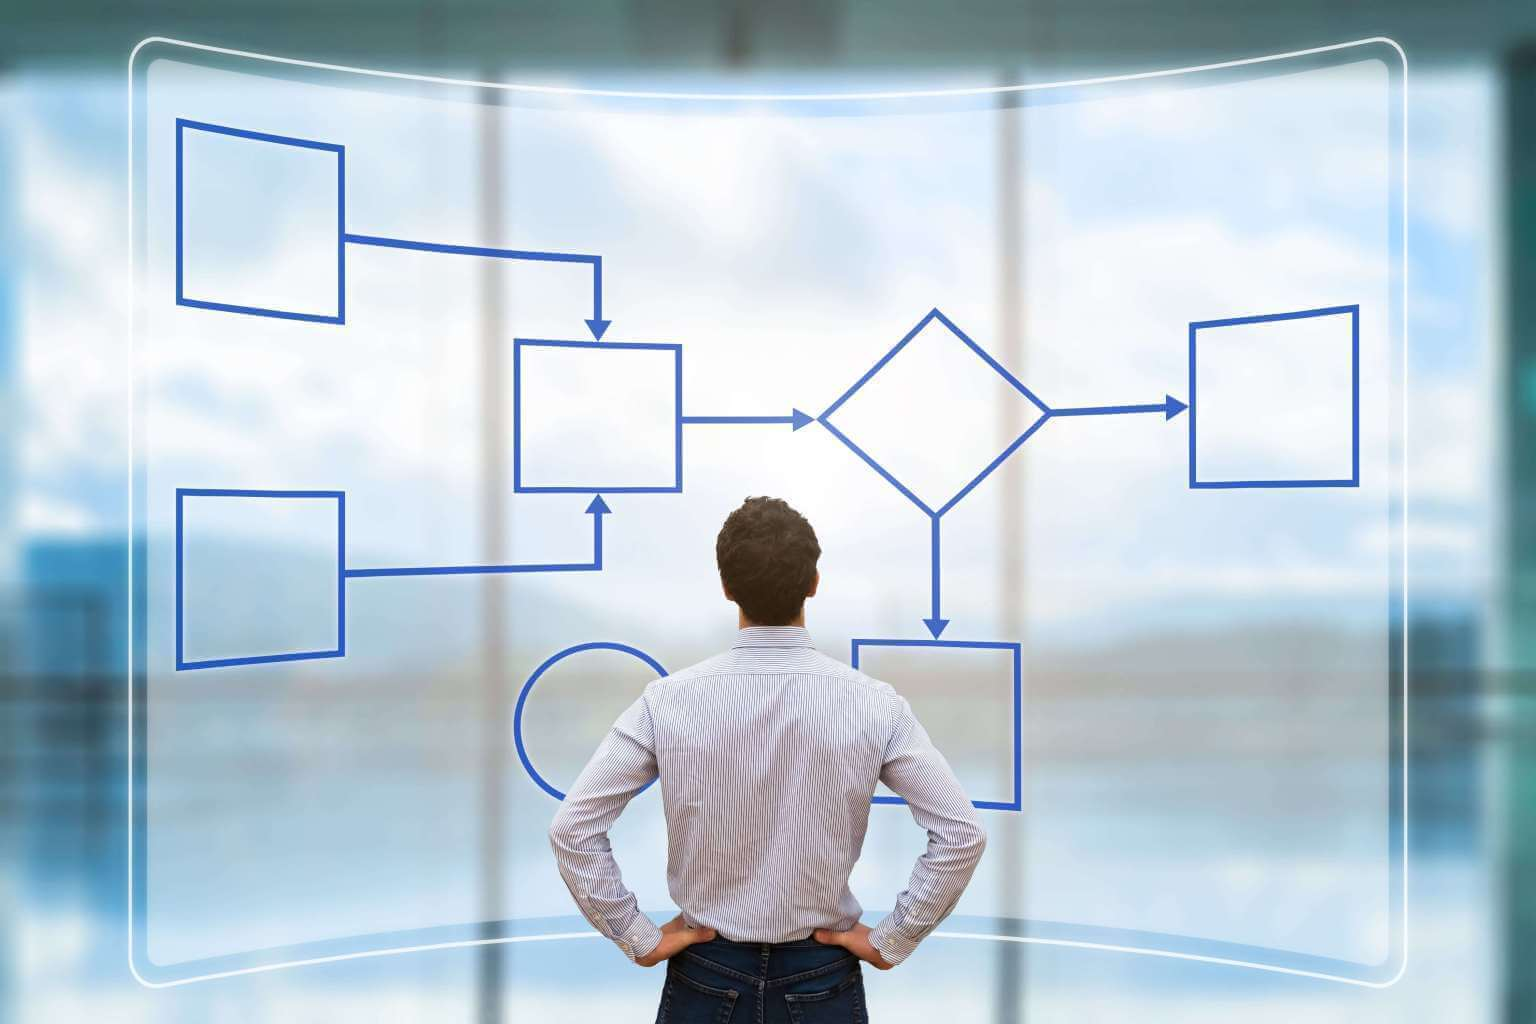 InteractModel - man standing in front of business processes and workflows